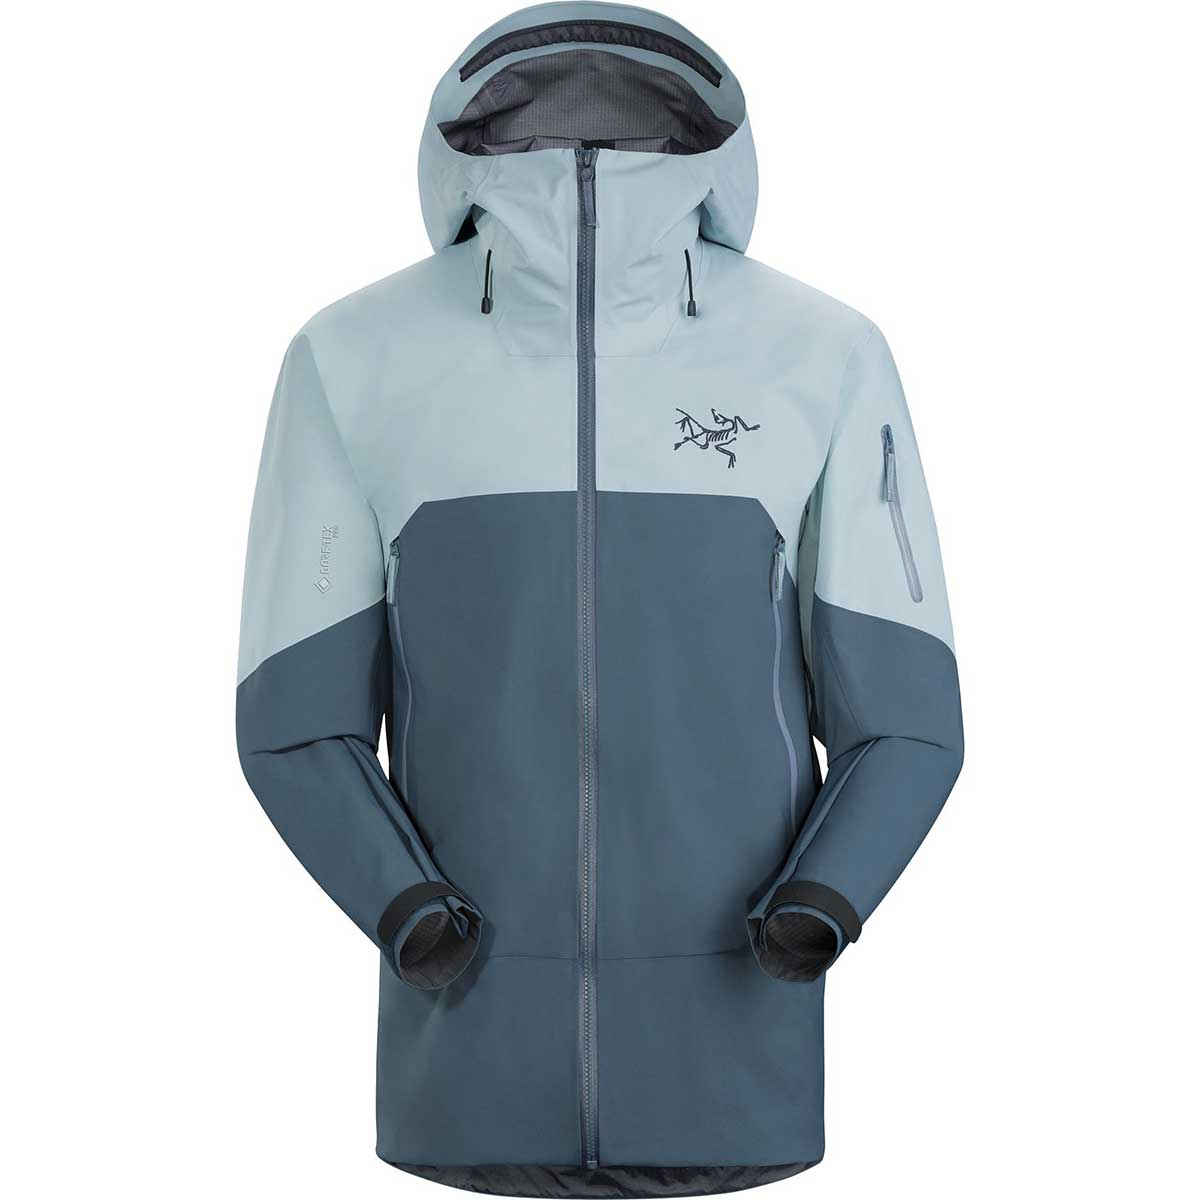 Arcteryx men's Rush Jacket in Cyborg front view